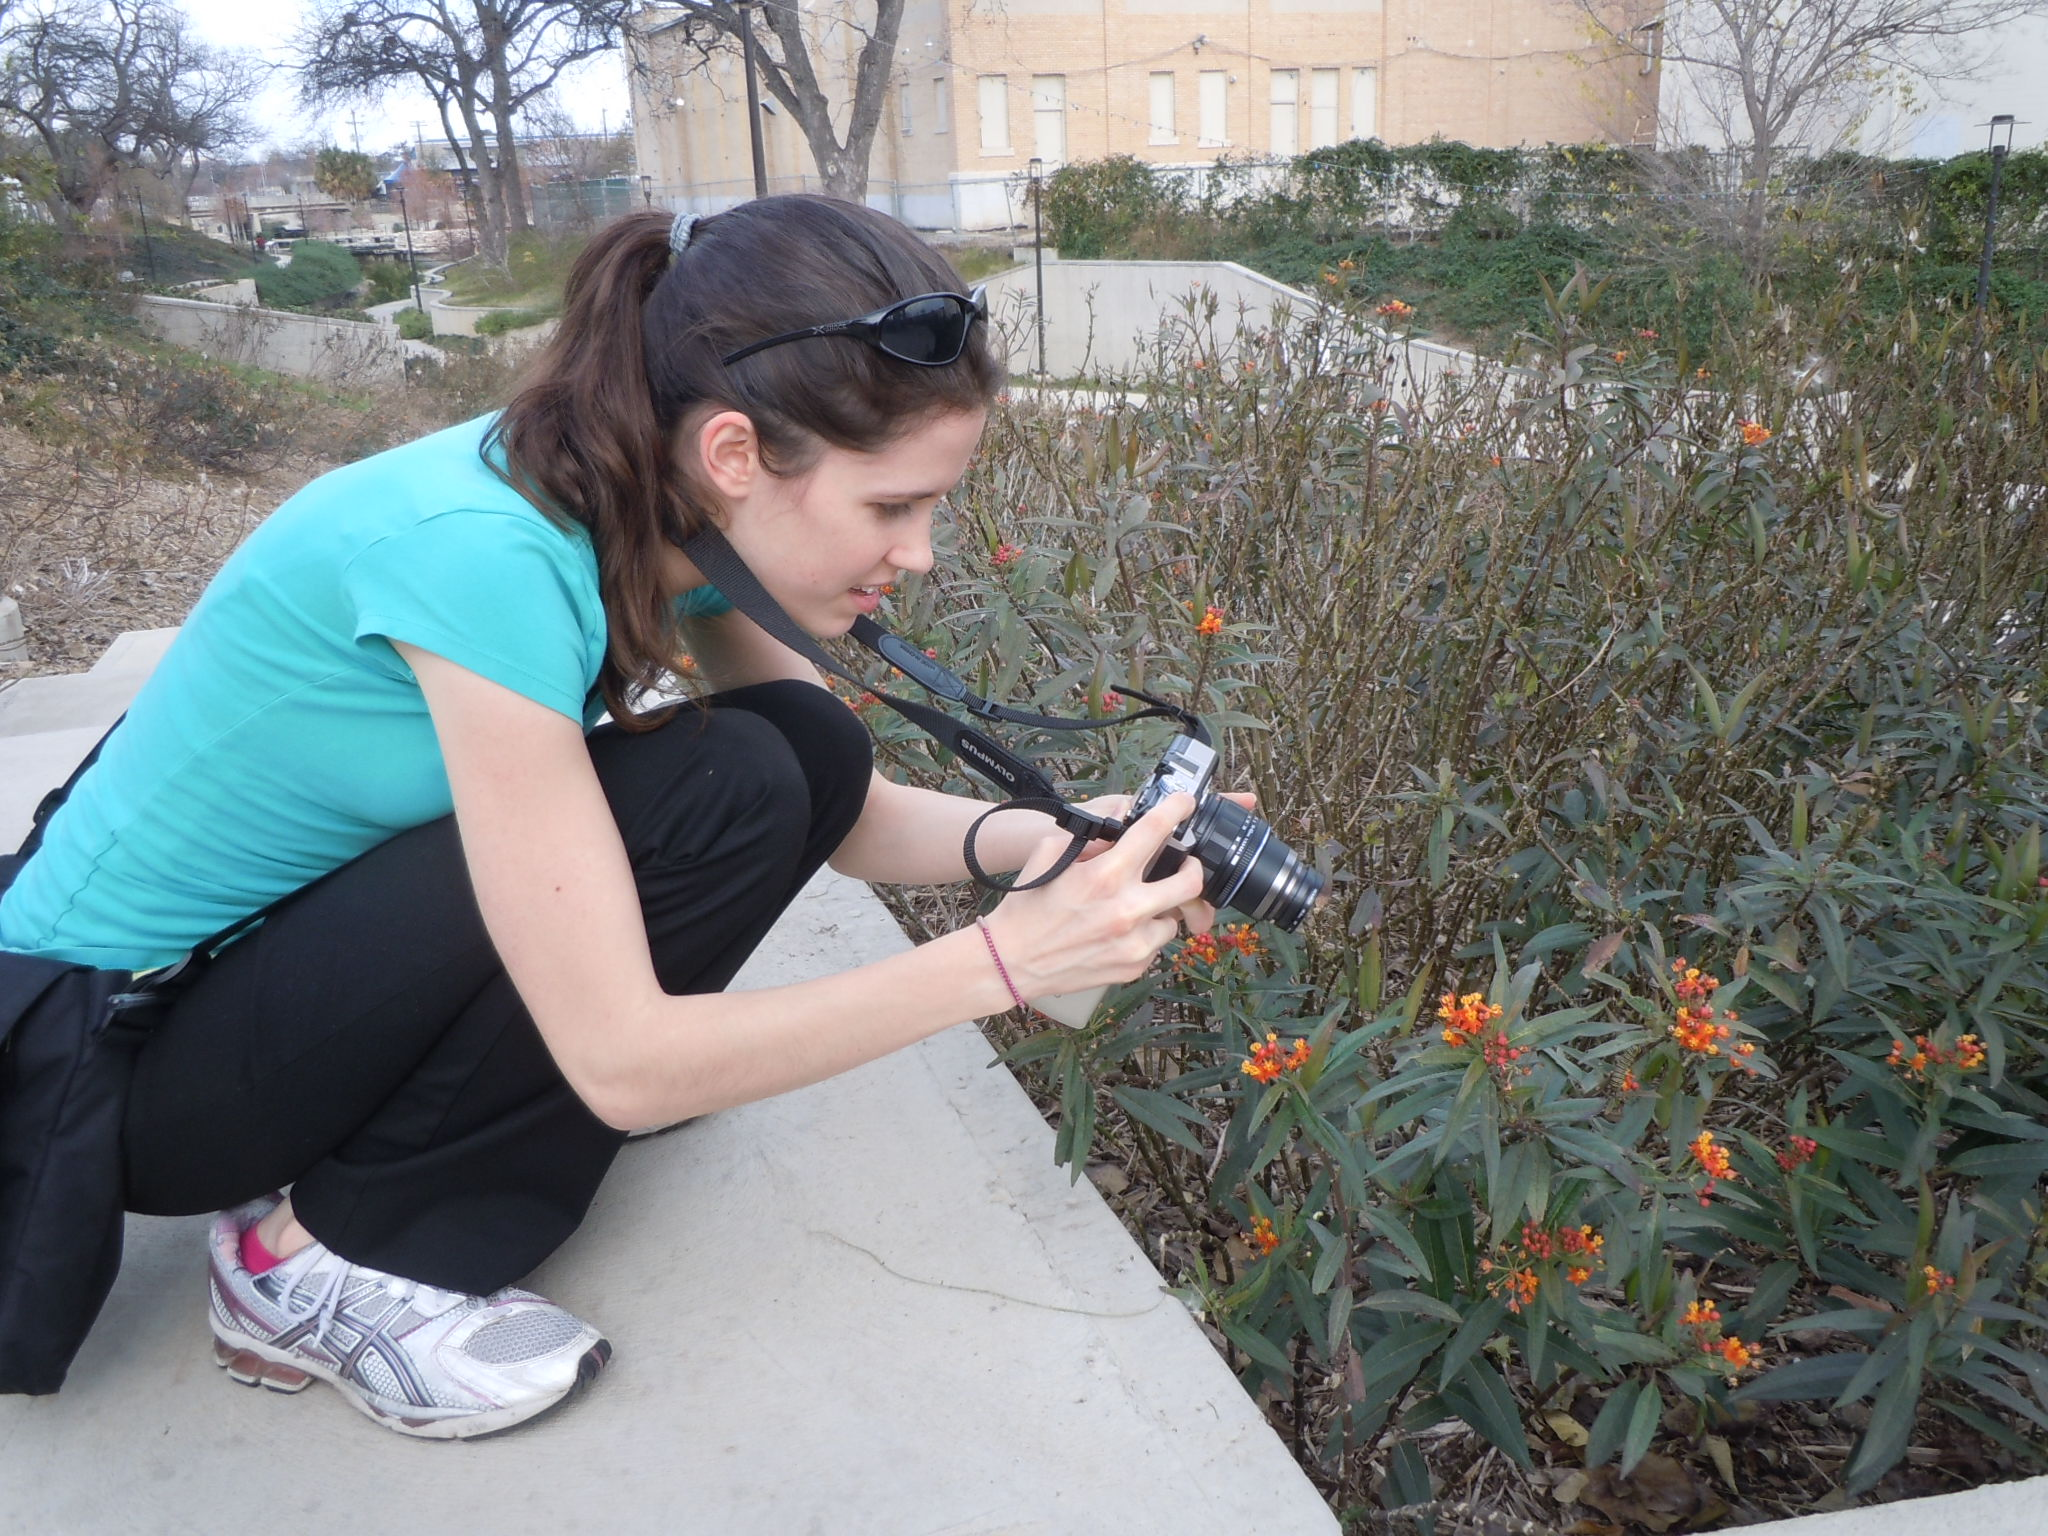 University of Minnesota Graduate Student Kelly Nail at the Museum Reach Milkweed Patch